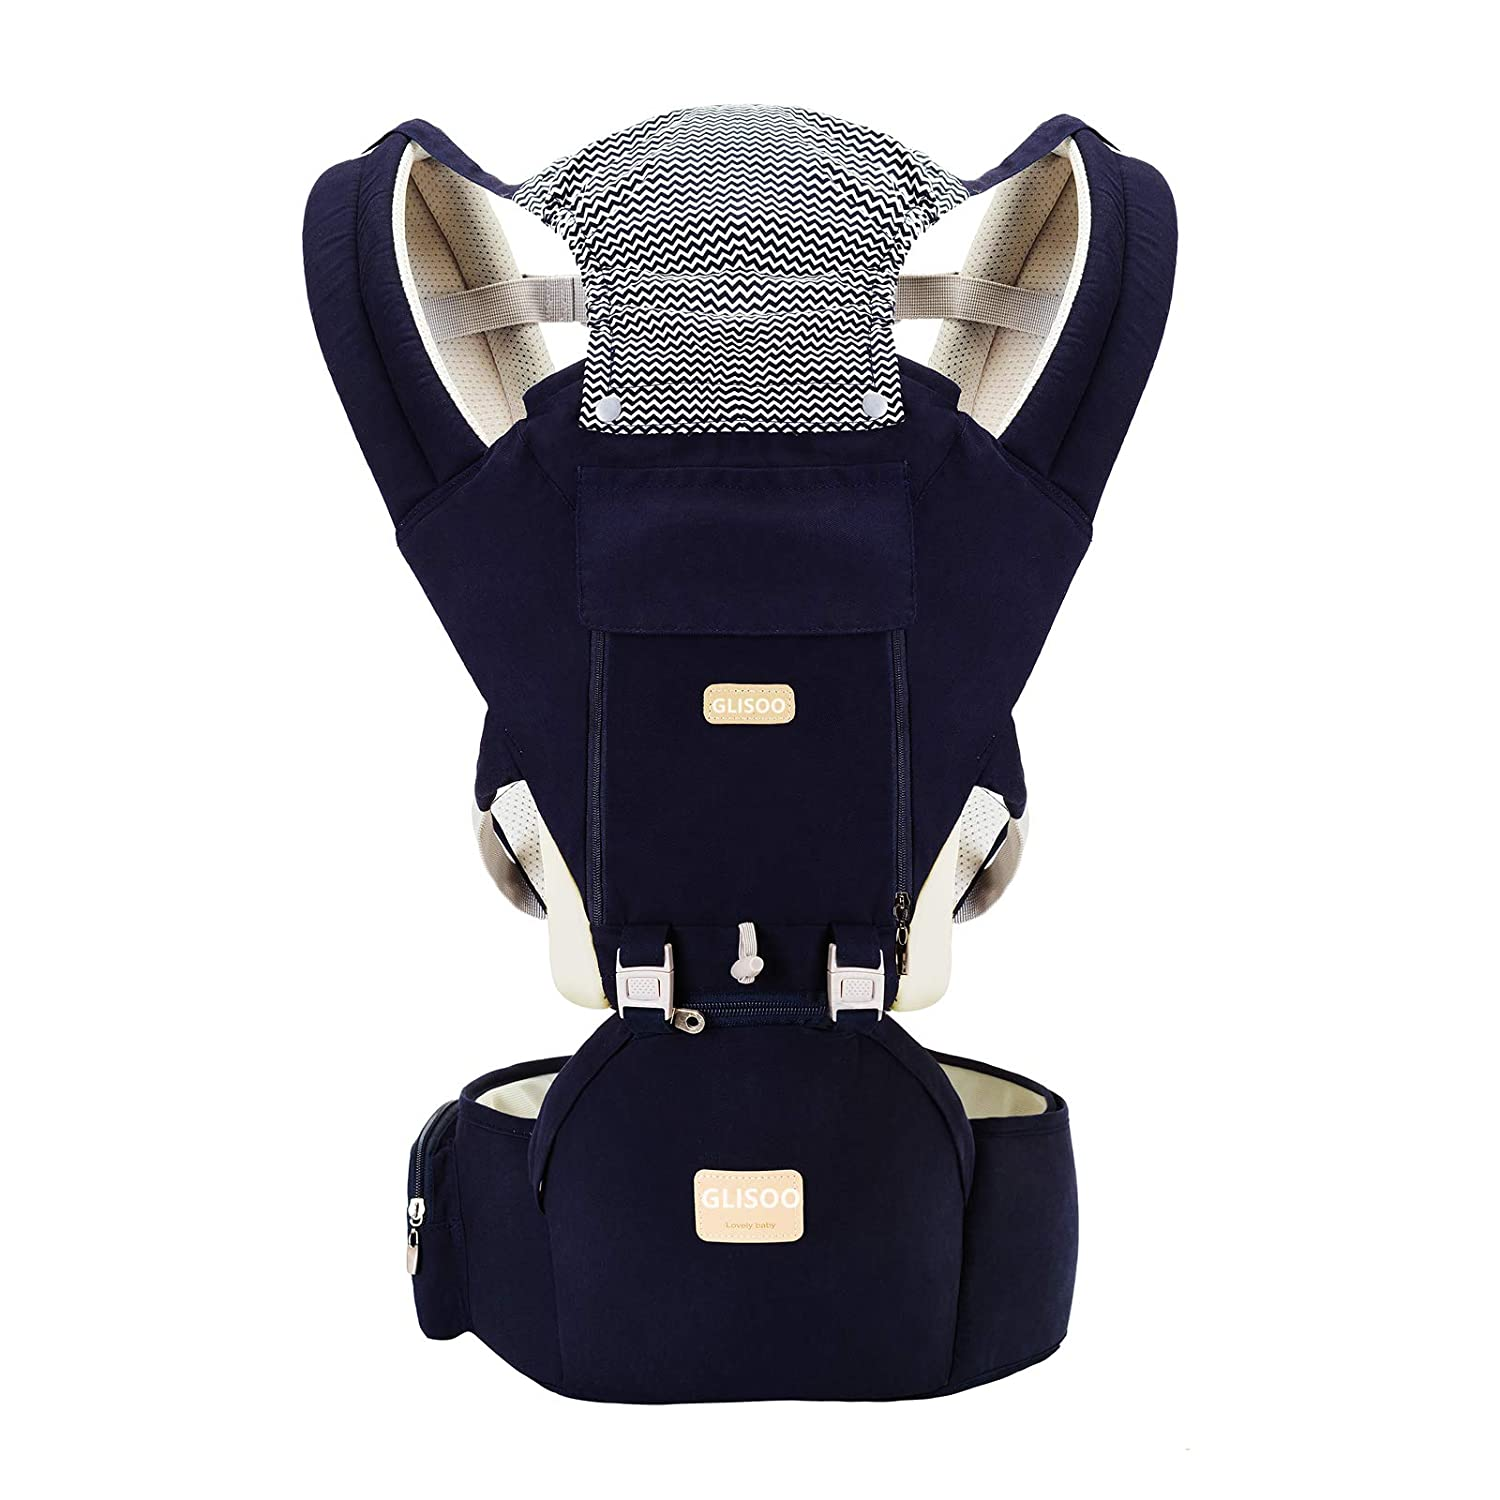 GLISOO Ergonomic 360°Baby Soft Carrier+Easy to Put On 6 Comfortable Positions+Breastfeeding Fits All Newborn+Toddler +HipSeat+ Air Mesh Breathable+All Seasons+Perfect for Hiking+ShoppingBlue)